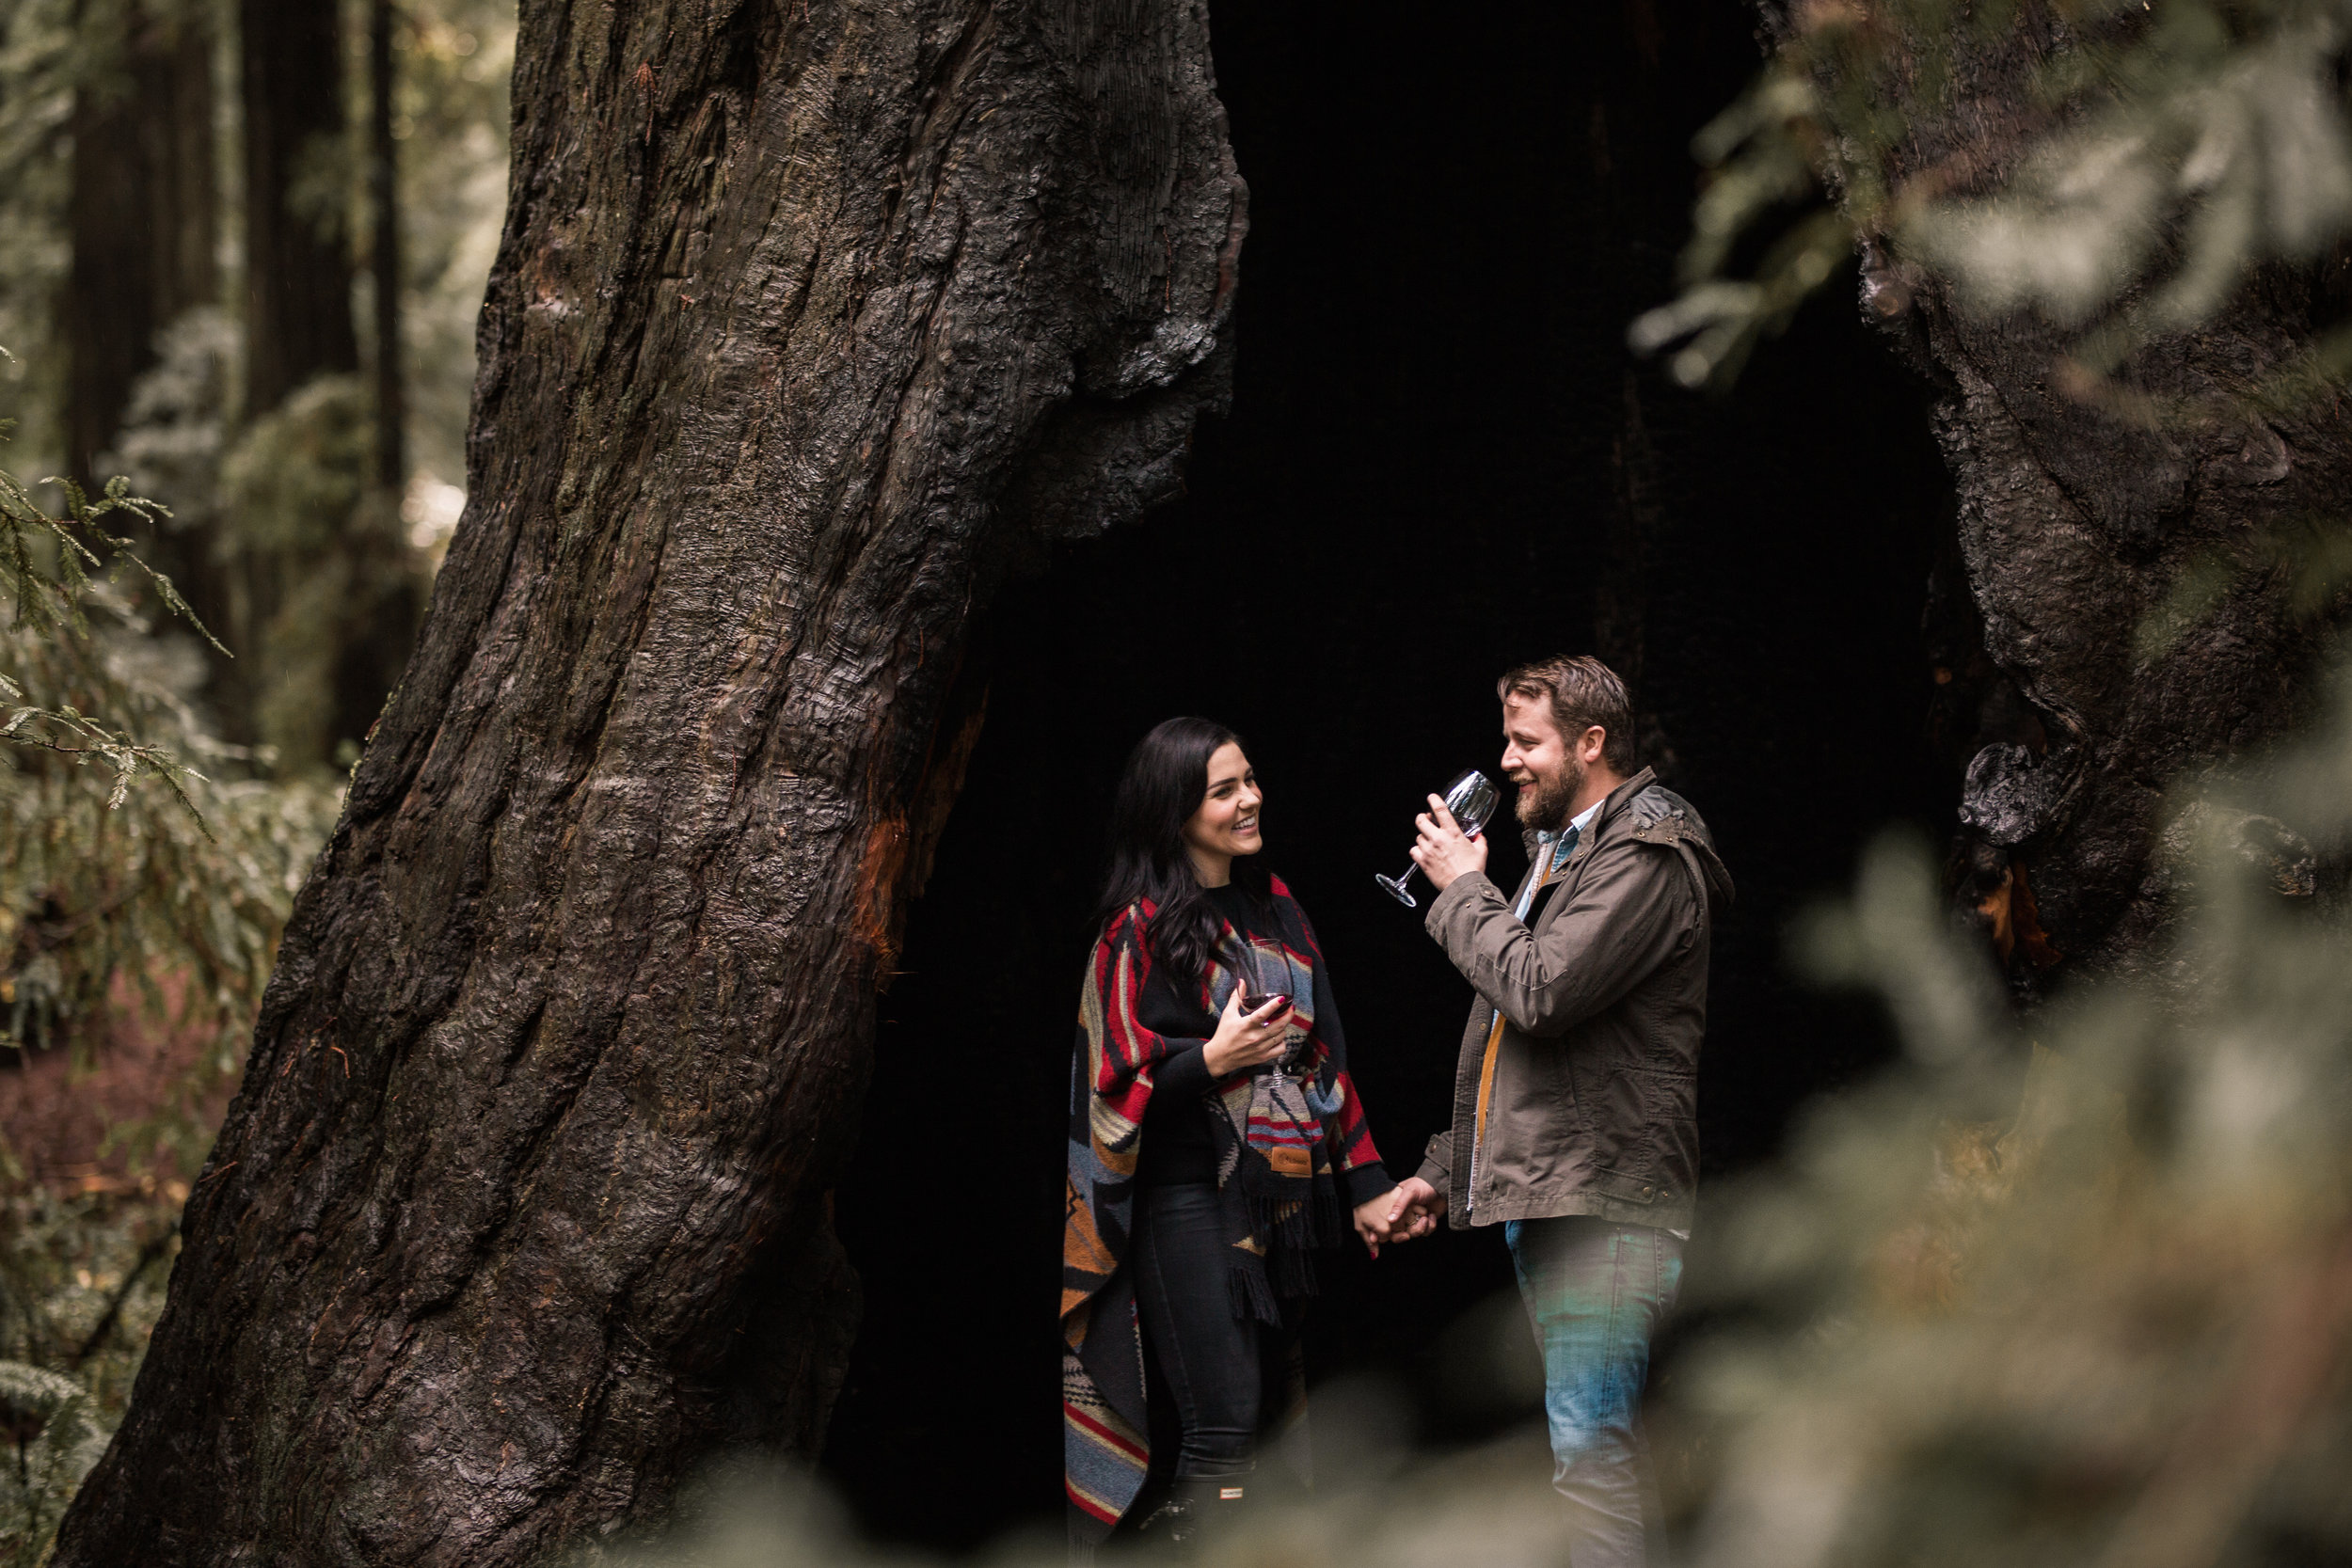 nicole-daacke-photography-redwoods-national-park-forest-rainy-foggy-adventure-engagement-session-humboldt-county-old-growth-redwood-tree-elopement-intimate-wedding-photographer-10.jpg